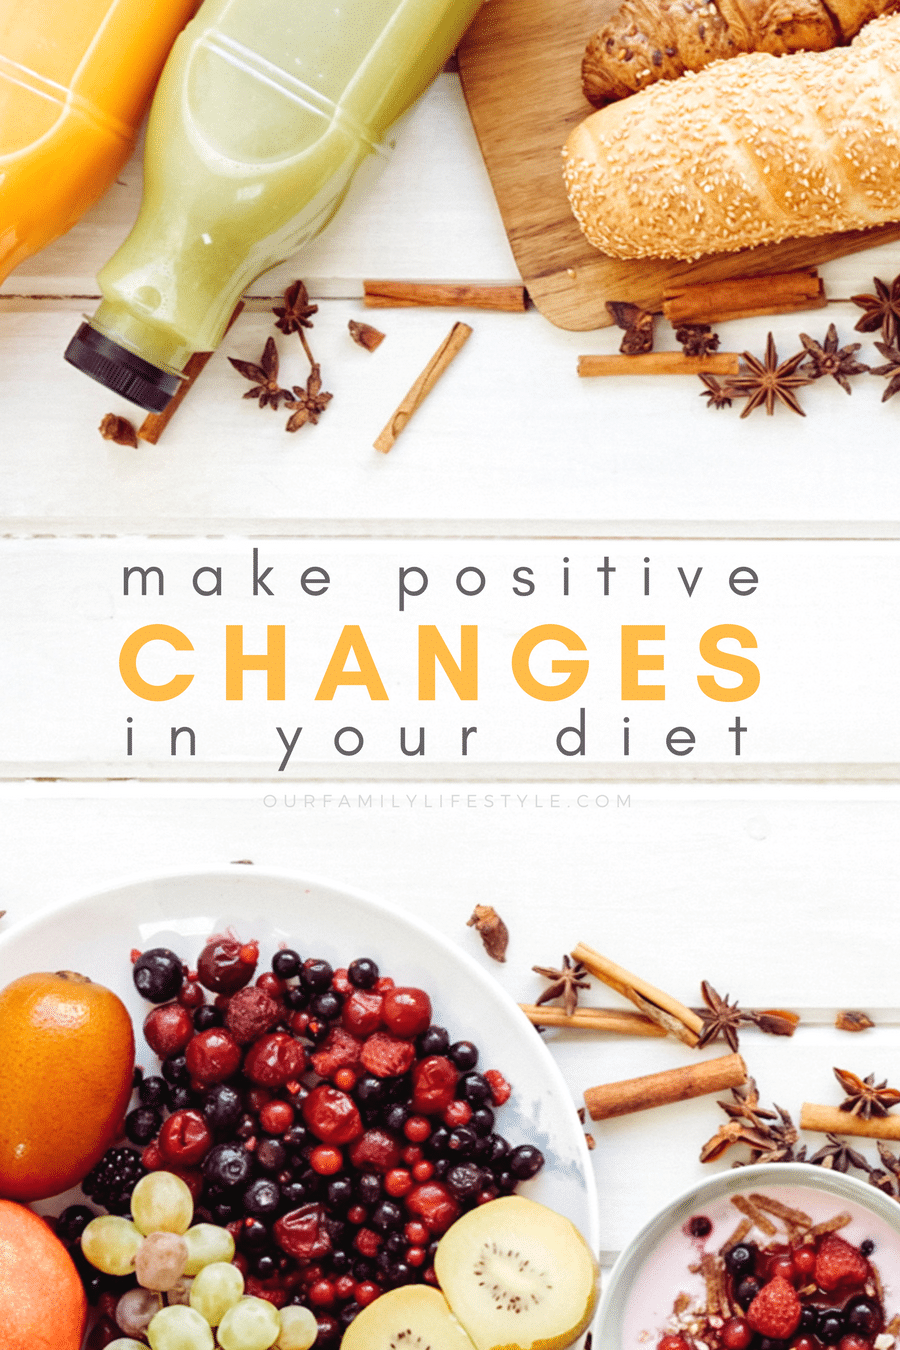 How to Make Positive Changes in Your Diet